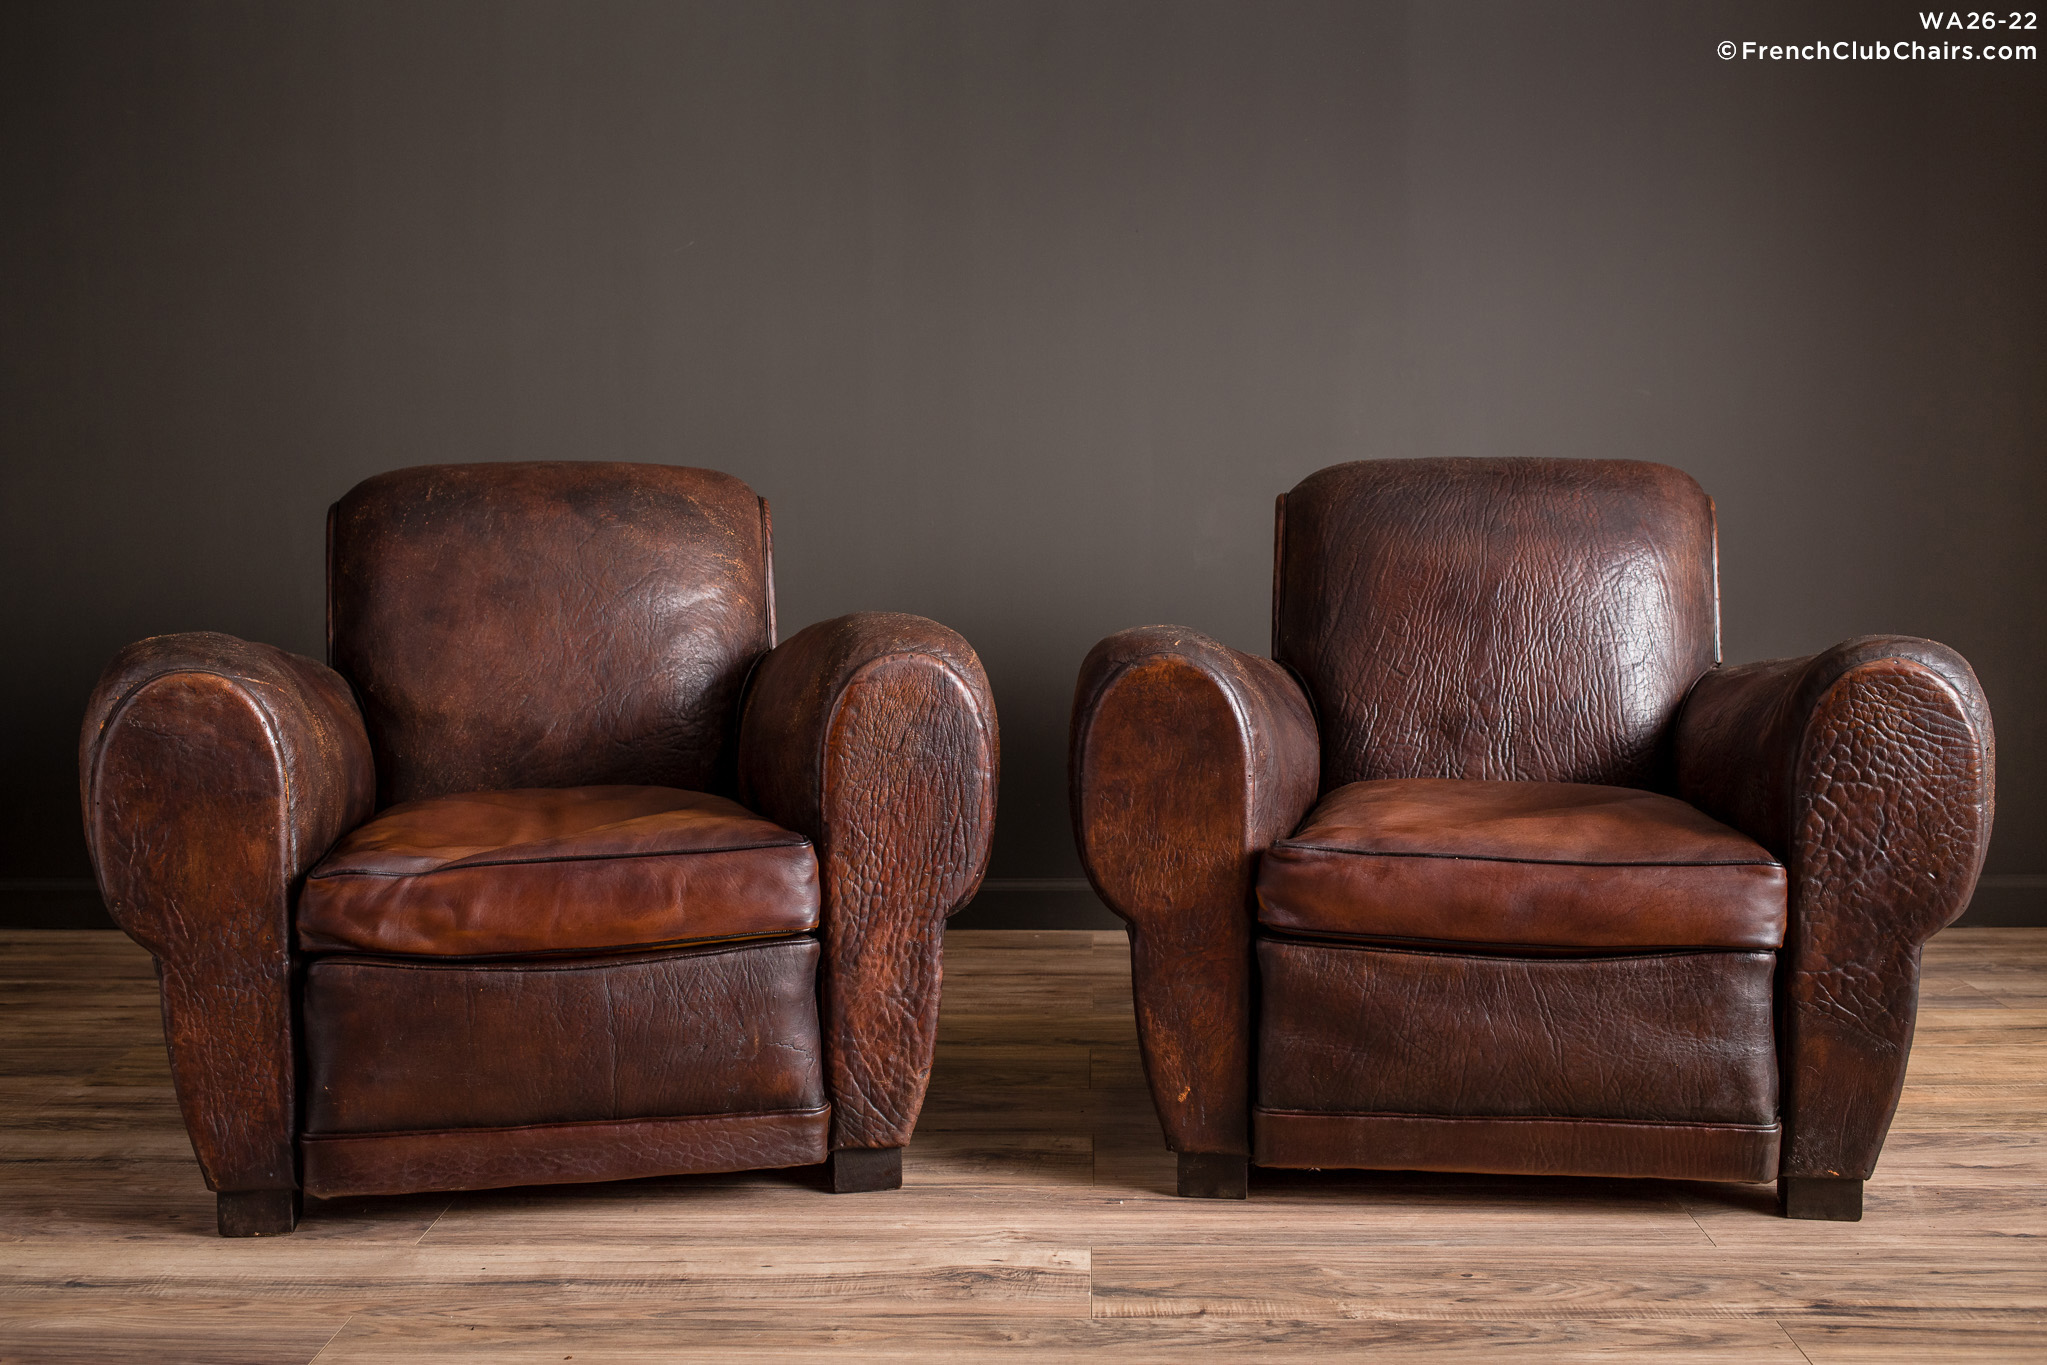 WA_26-22_Biarritz_Rich_Chocolate_Rollback_pair_R_1TQ-v01-williams-antiks-leather-french-club-chair-wa_fcccom